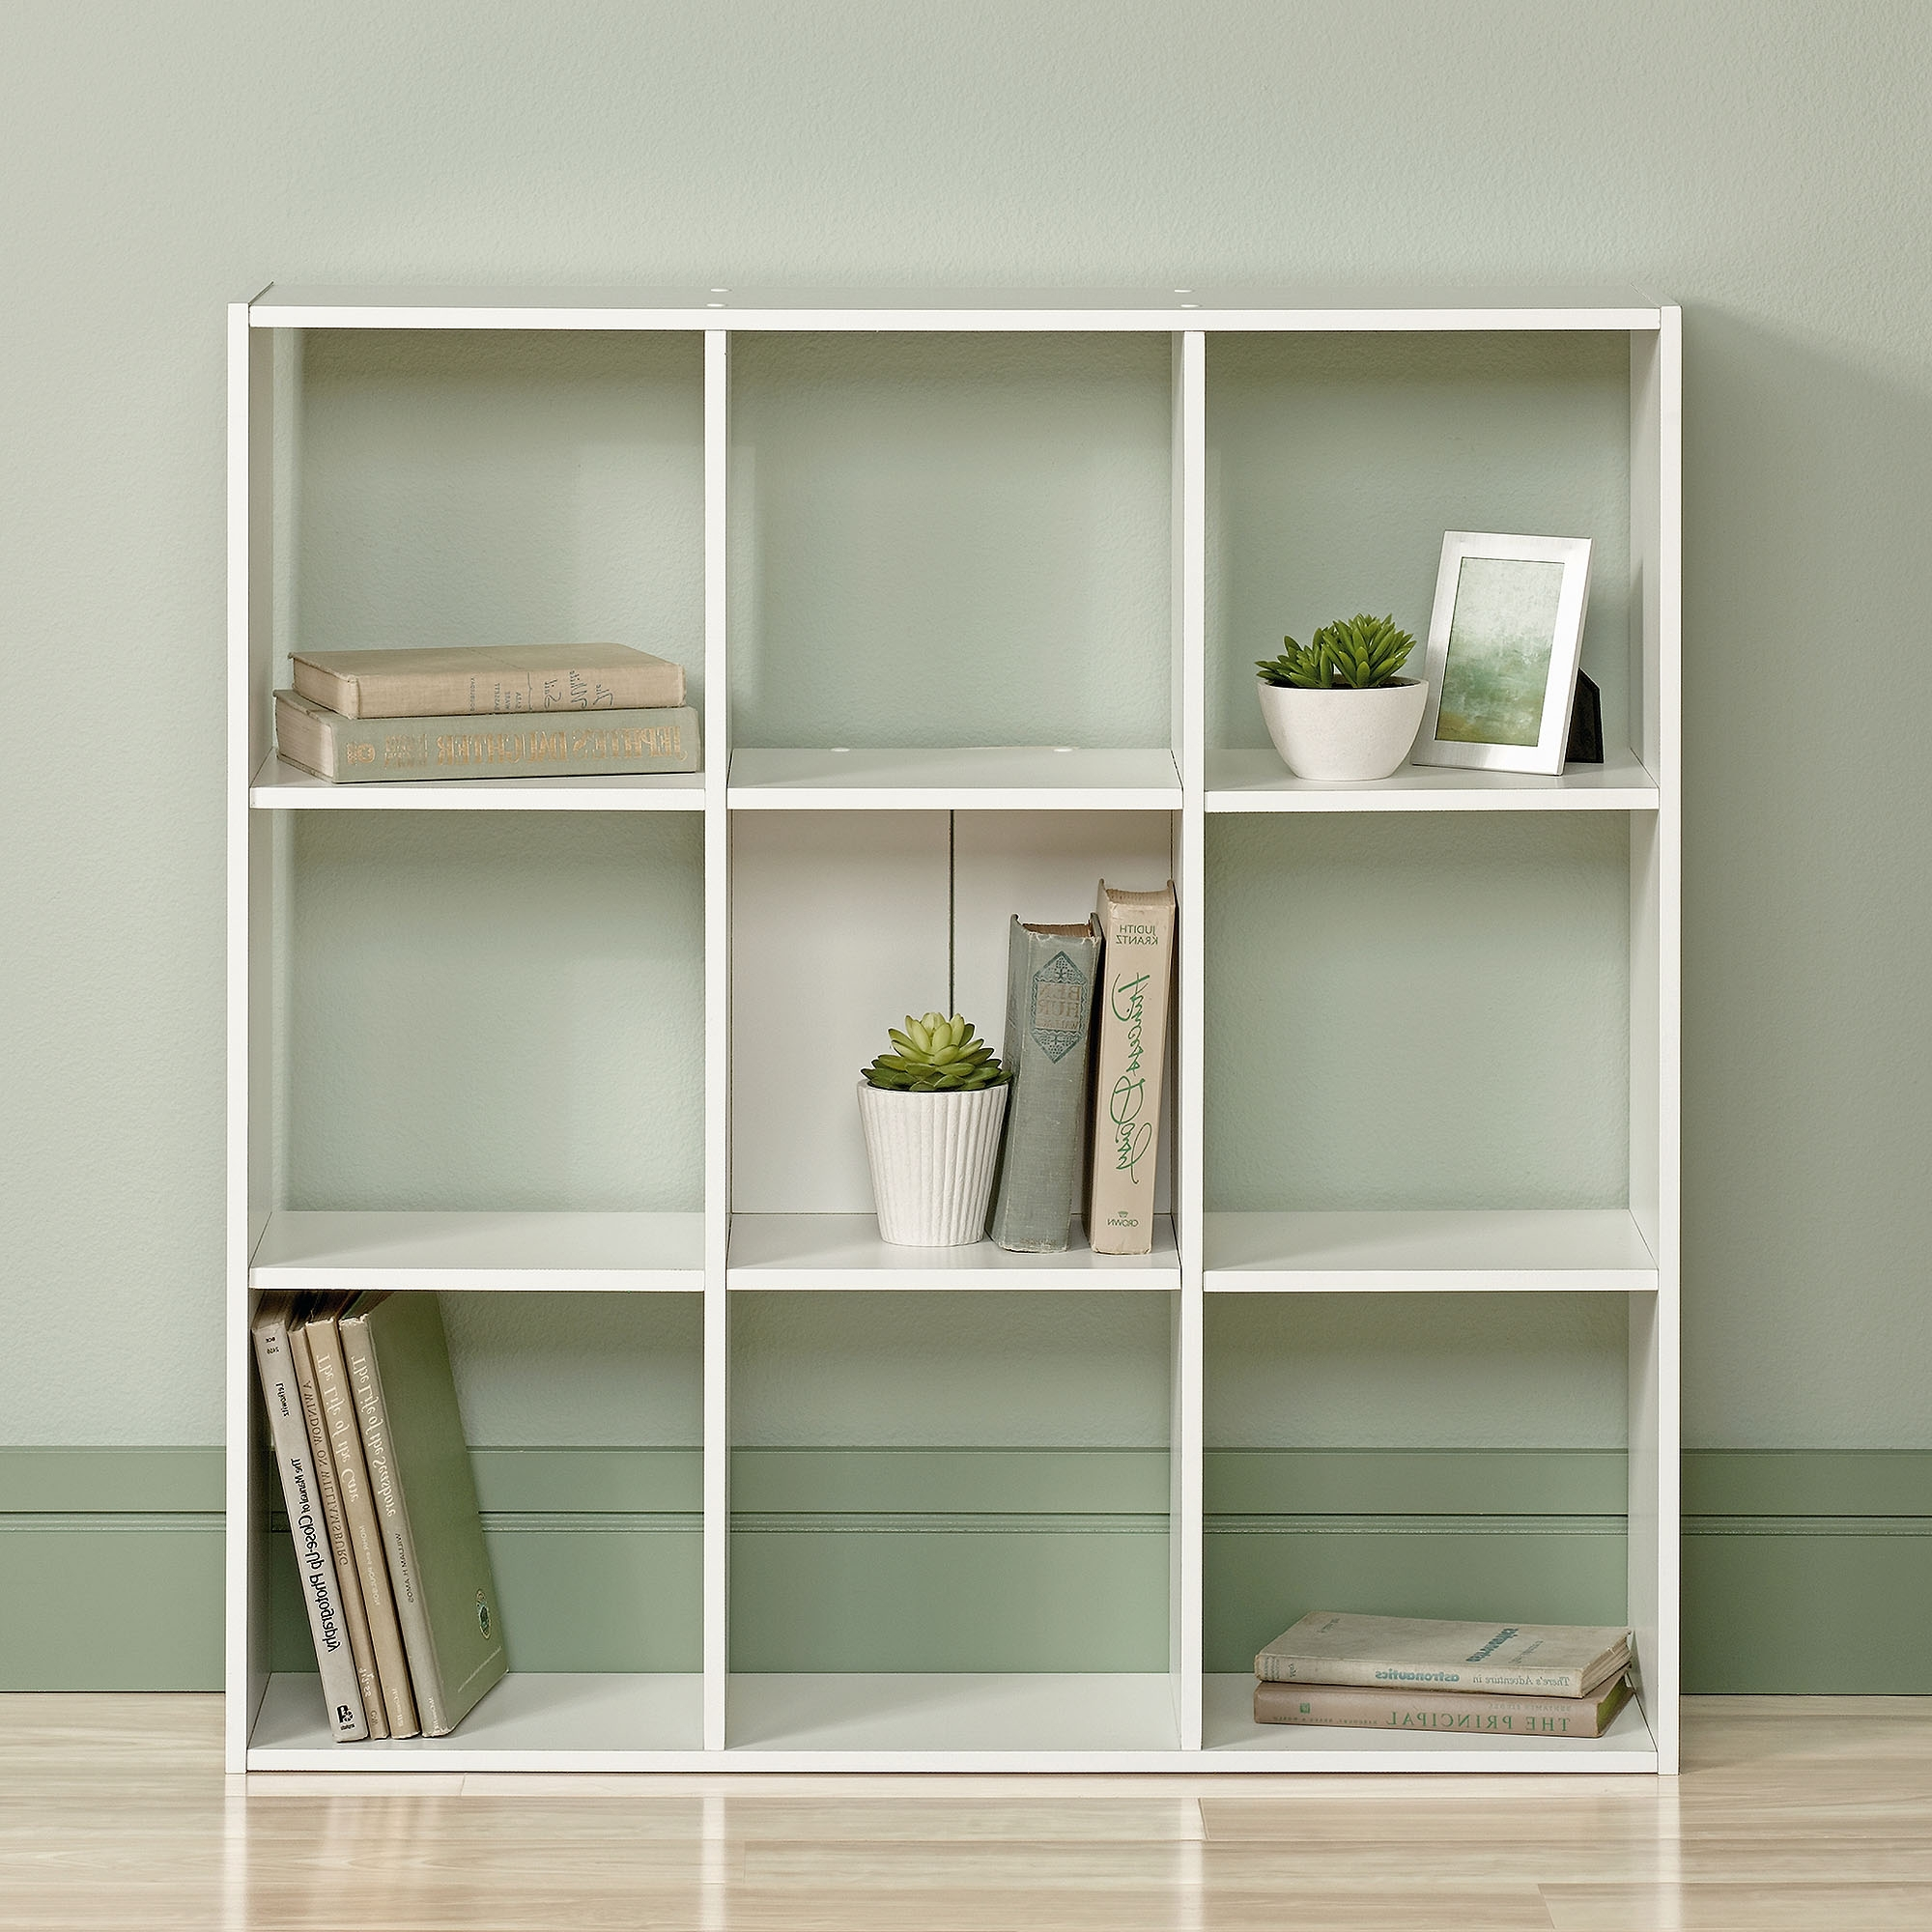 Sauder Organizer Bookcase, Soft White – Walmart Inside Current White Walmart Bookcases (View 13 of 15)